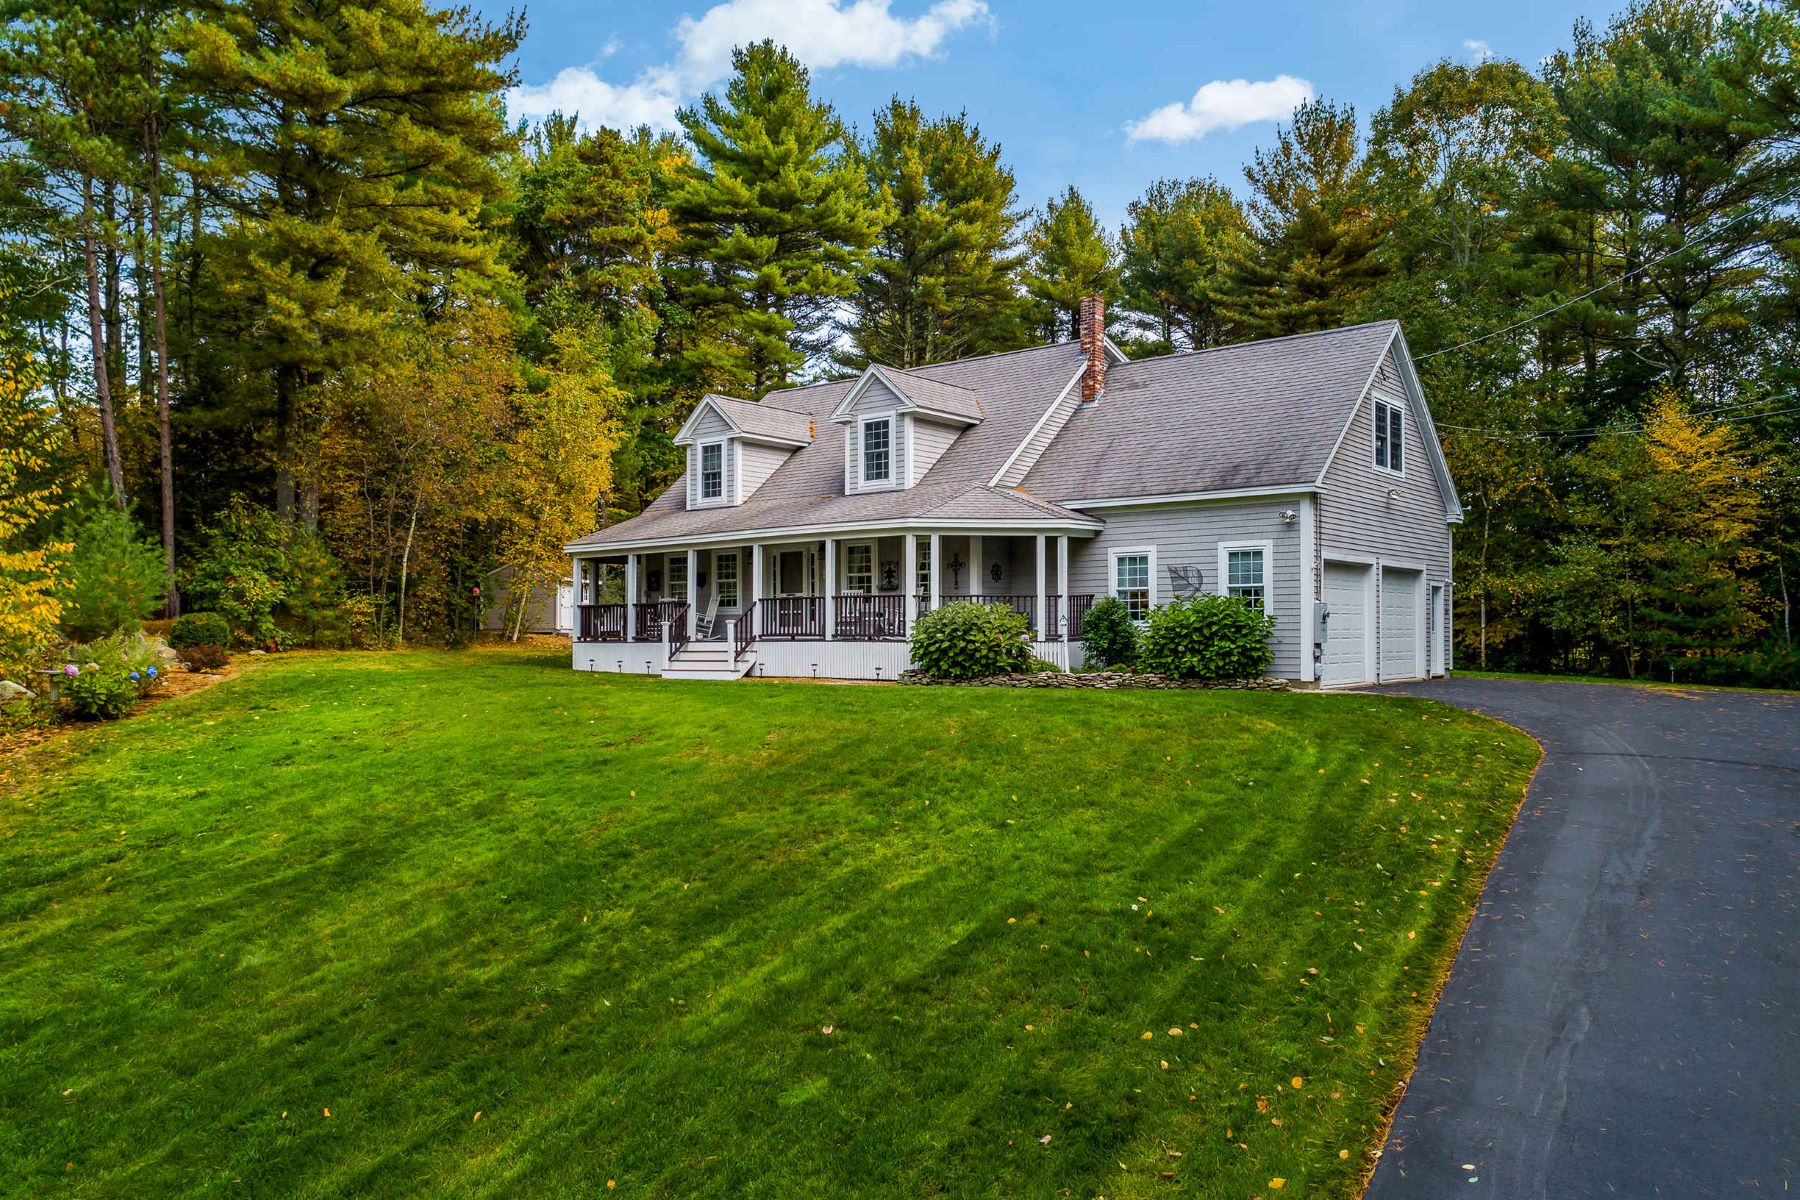 Single Family Homes for Active at Gorgeous Cape Close to Beaches & Shops 25 Logging Road Cape Neddick, Maine 03902 United States